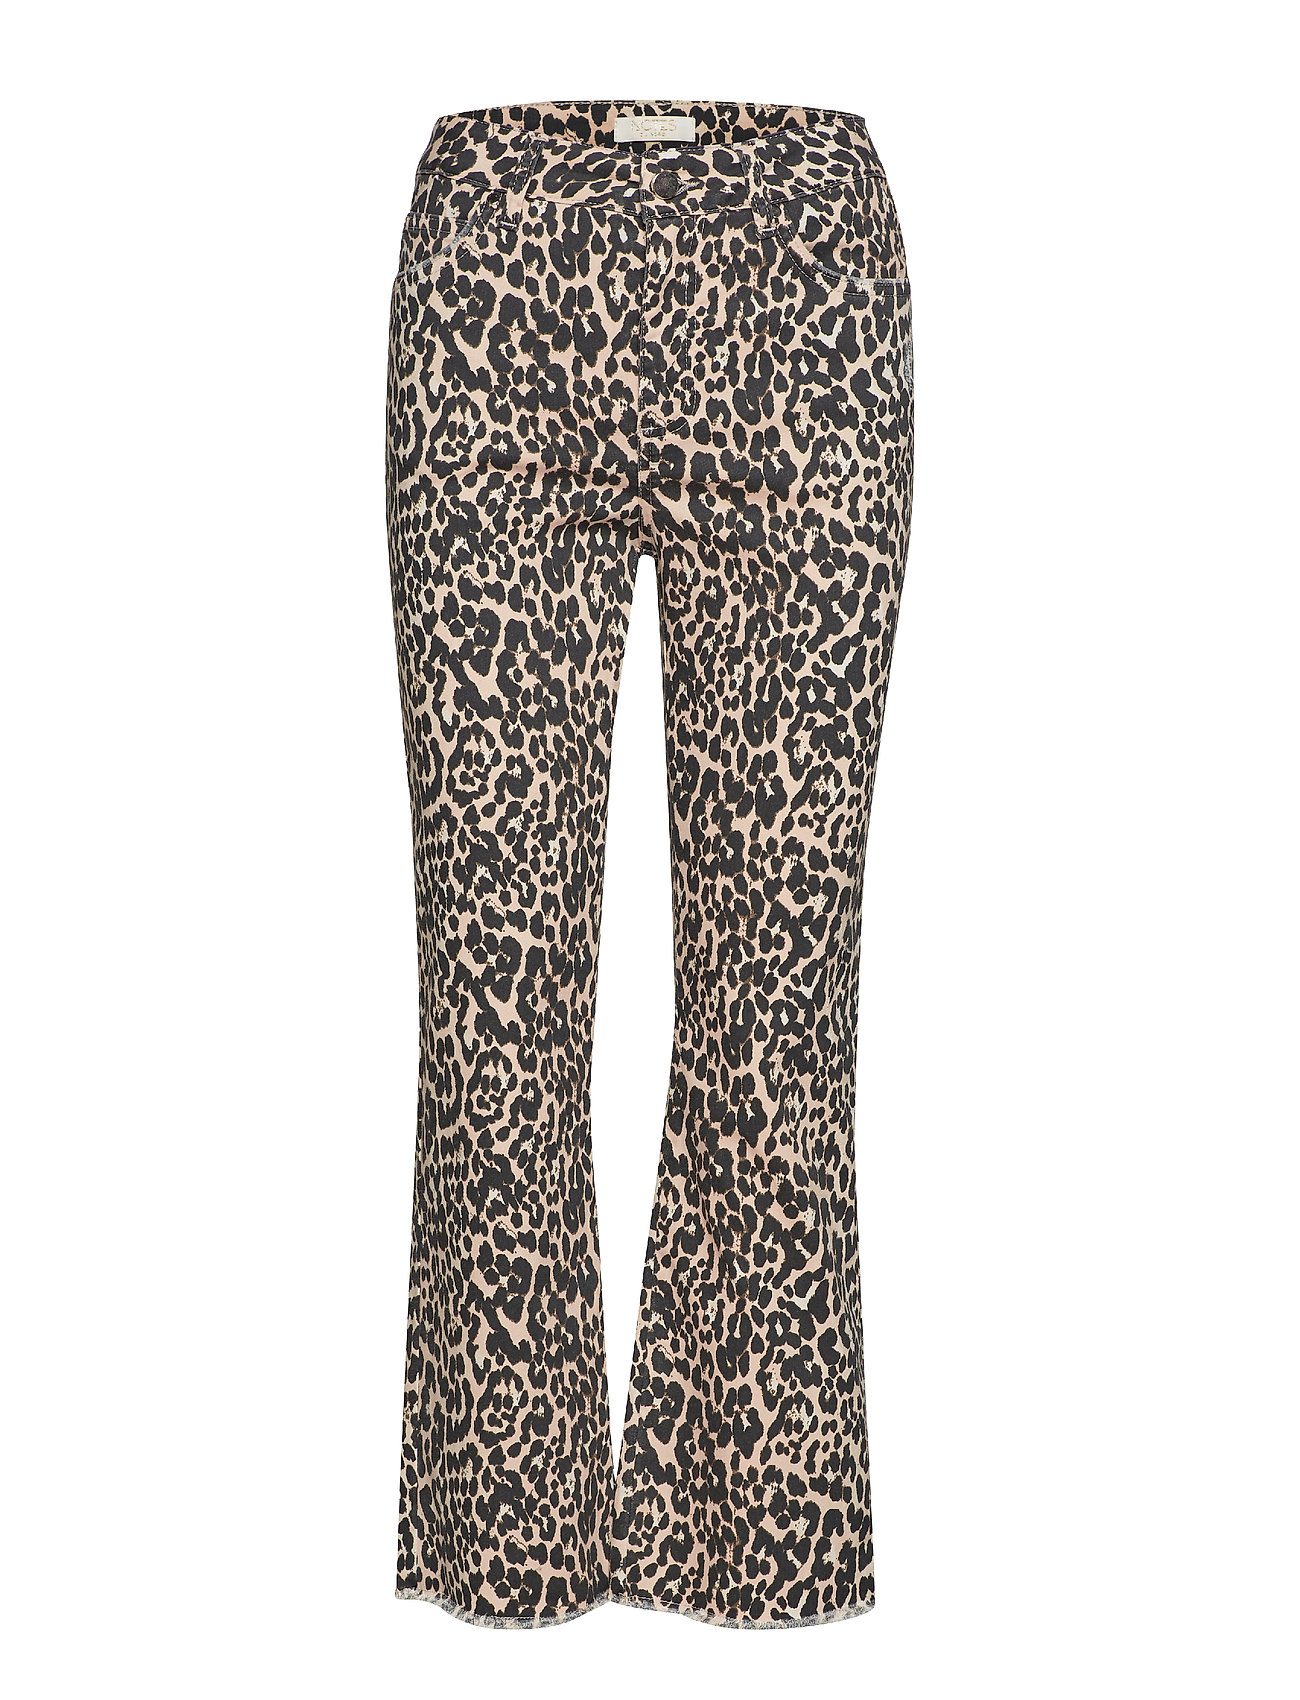 Kayla Cropped Jeans P (Leopard) (1299 kr) - Notes du Nord -  6b2b69bee3113